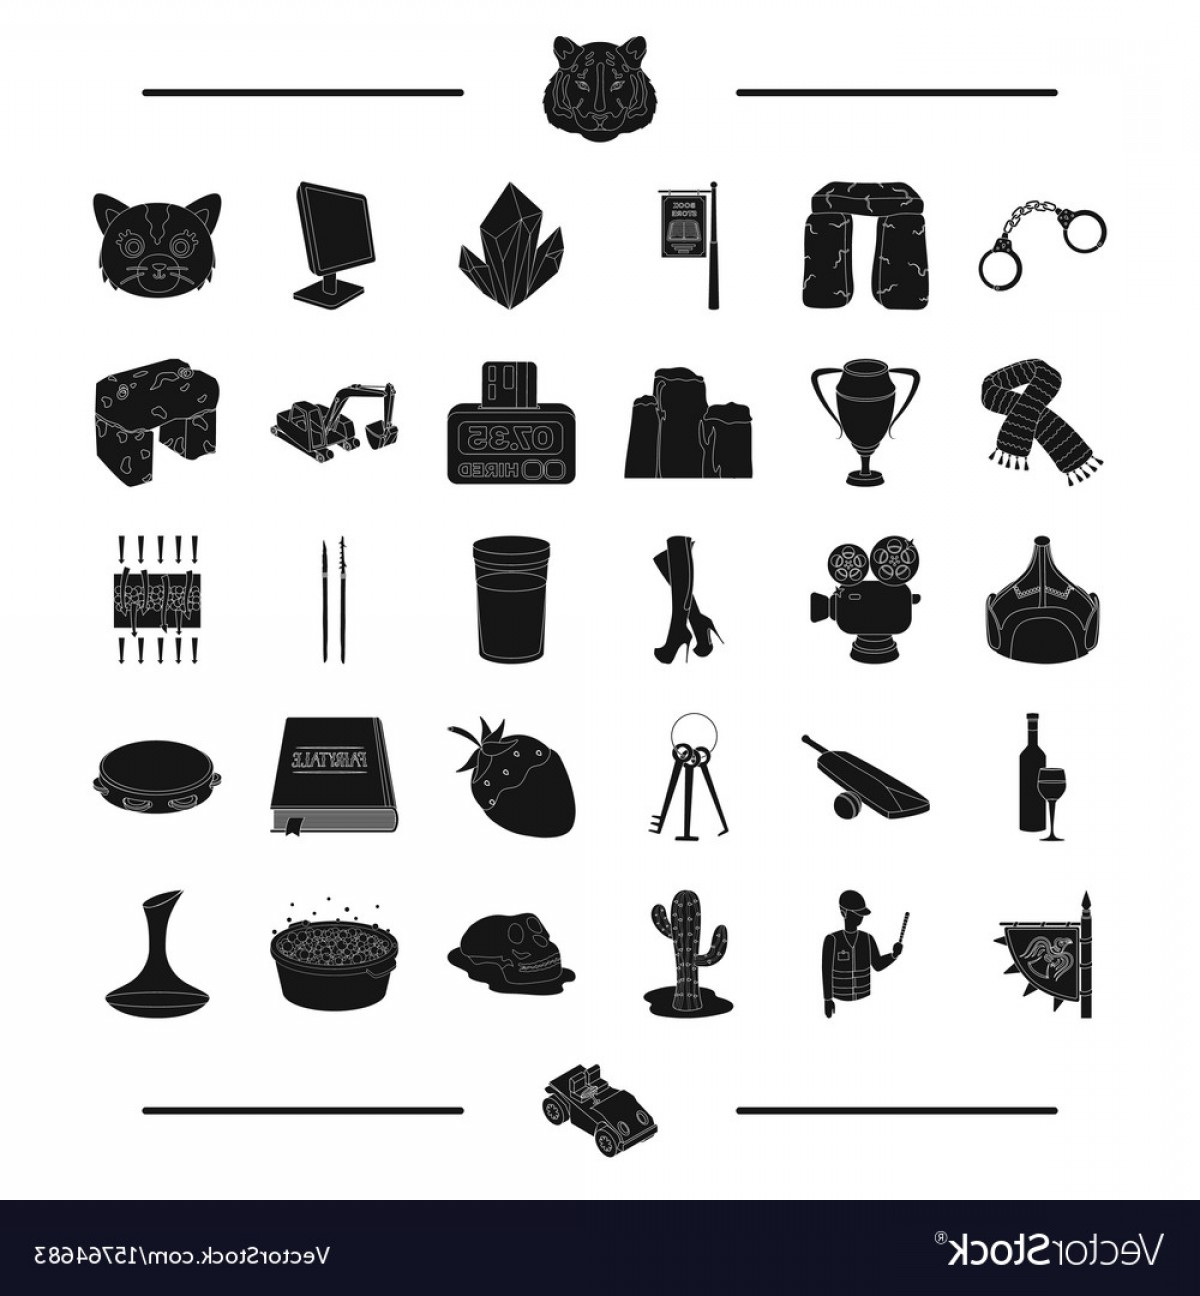 Hires Camera Lens Vector: Animal Desert Service And Other Web Icon In Vector